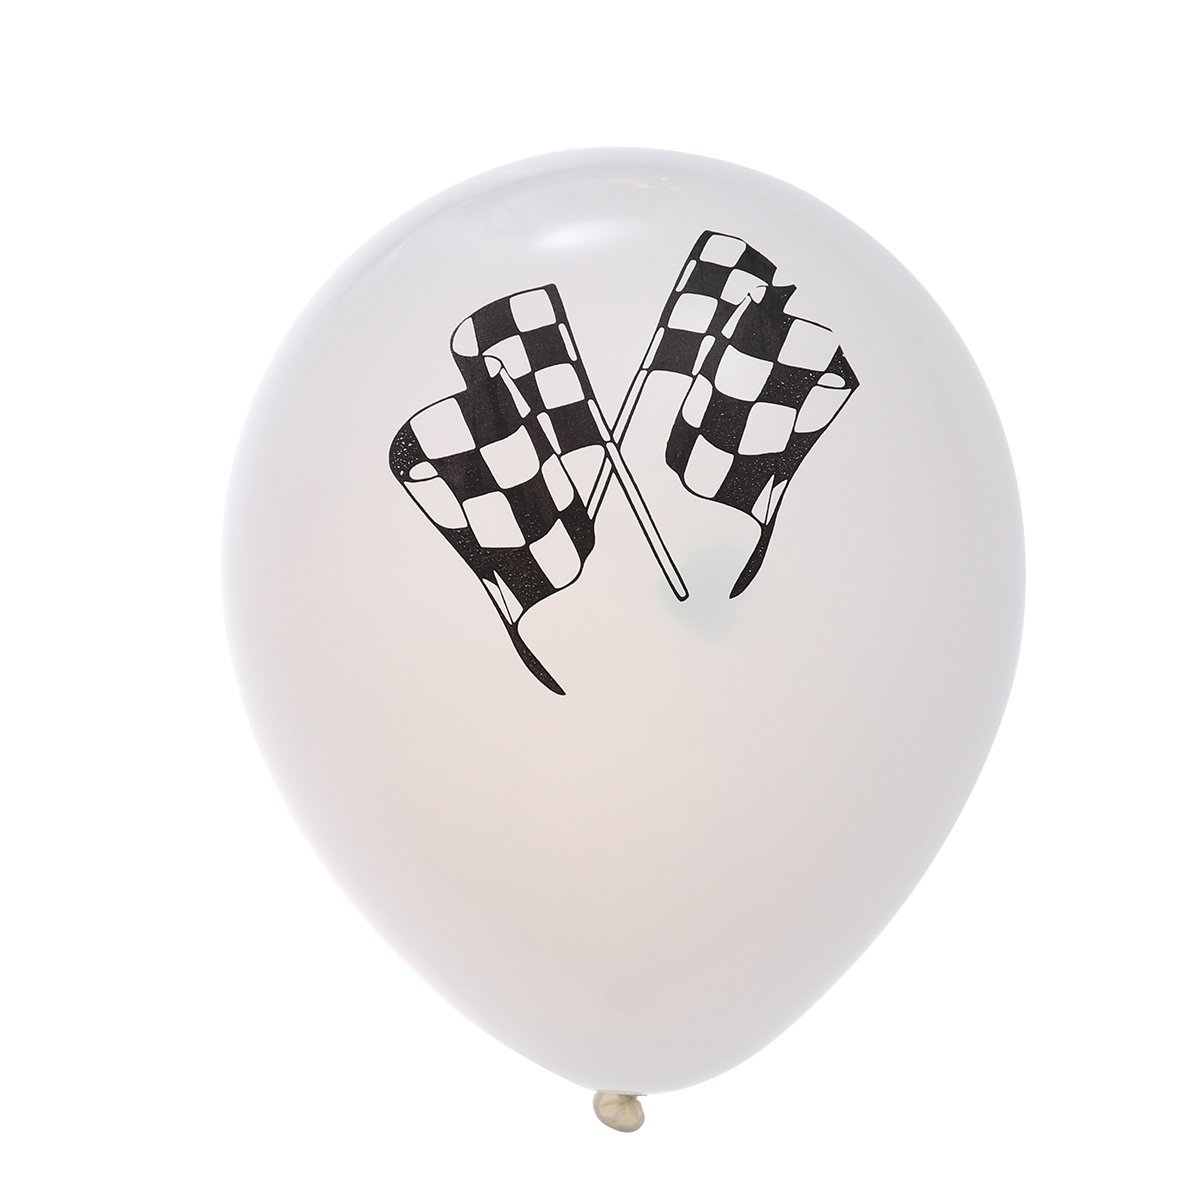 TOYMYTOY 10pcs Racing Balloons Checkered Flags Biodegradable Latex Balloons Party Favor for Race Car Themed Party